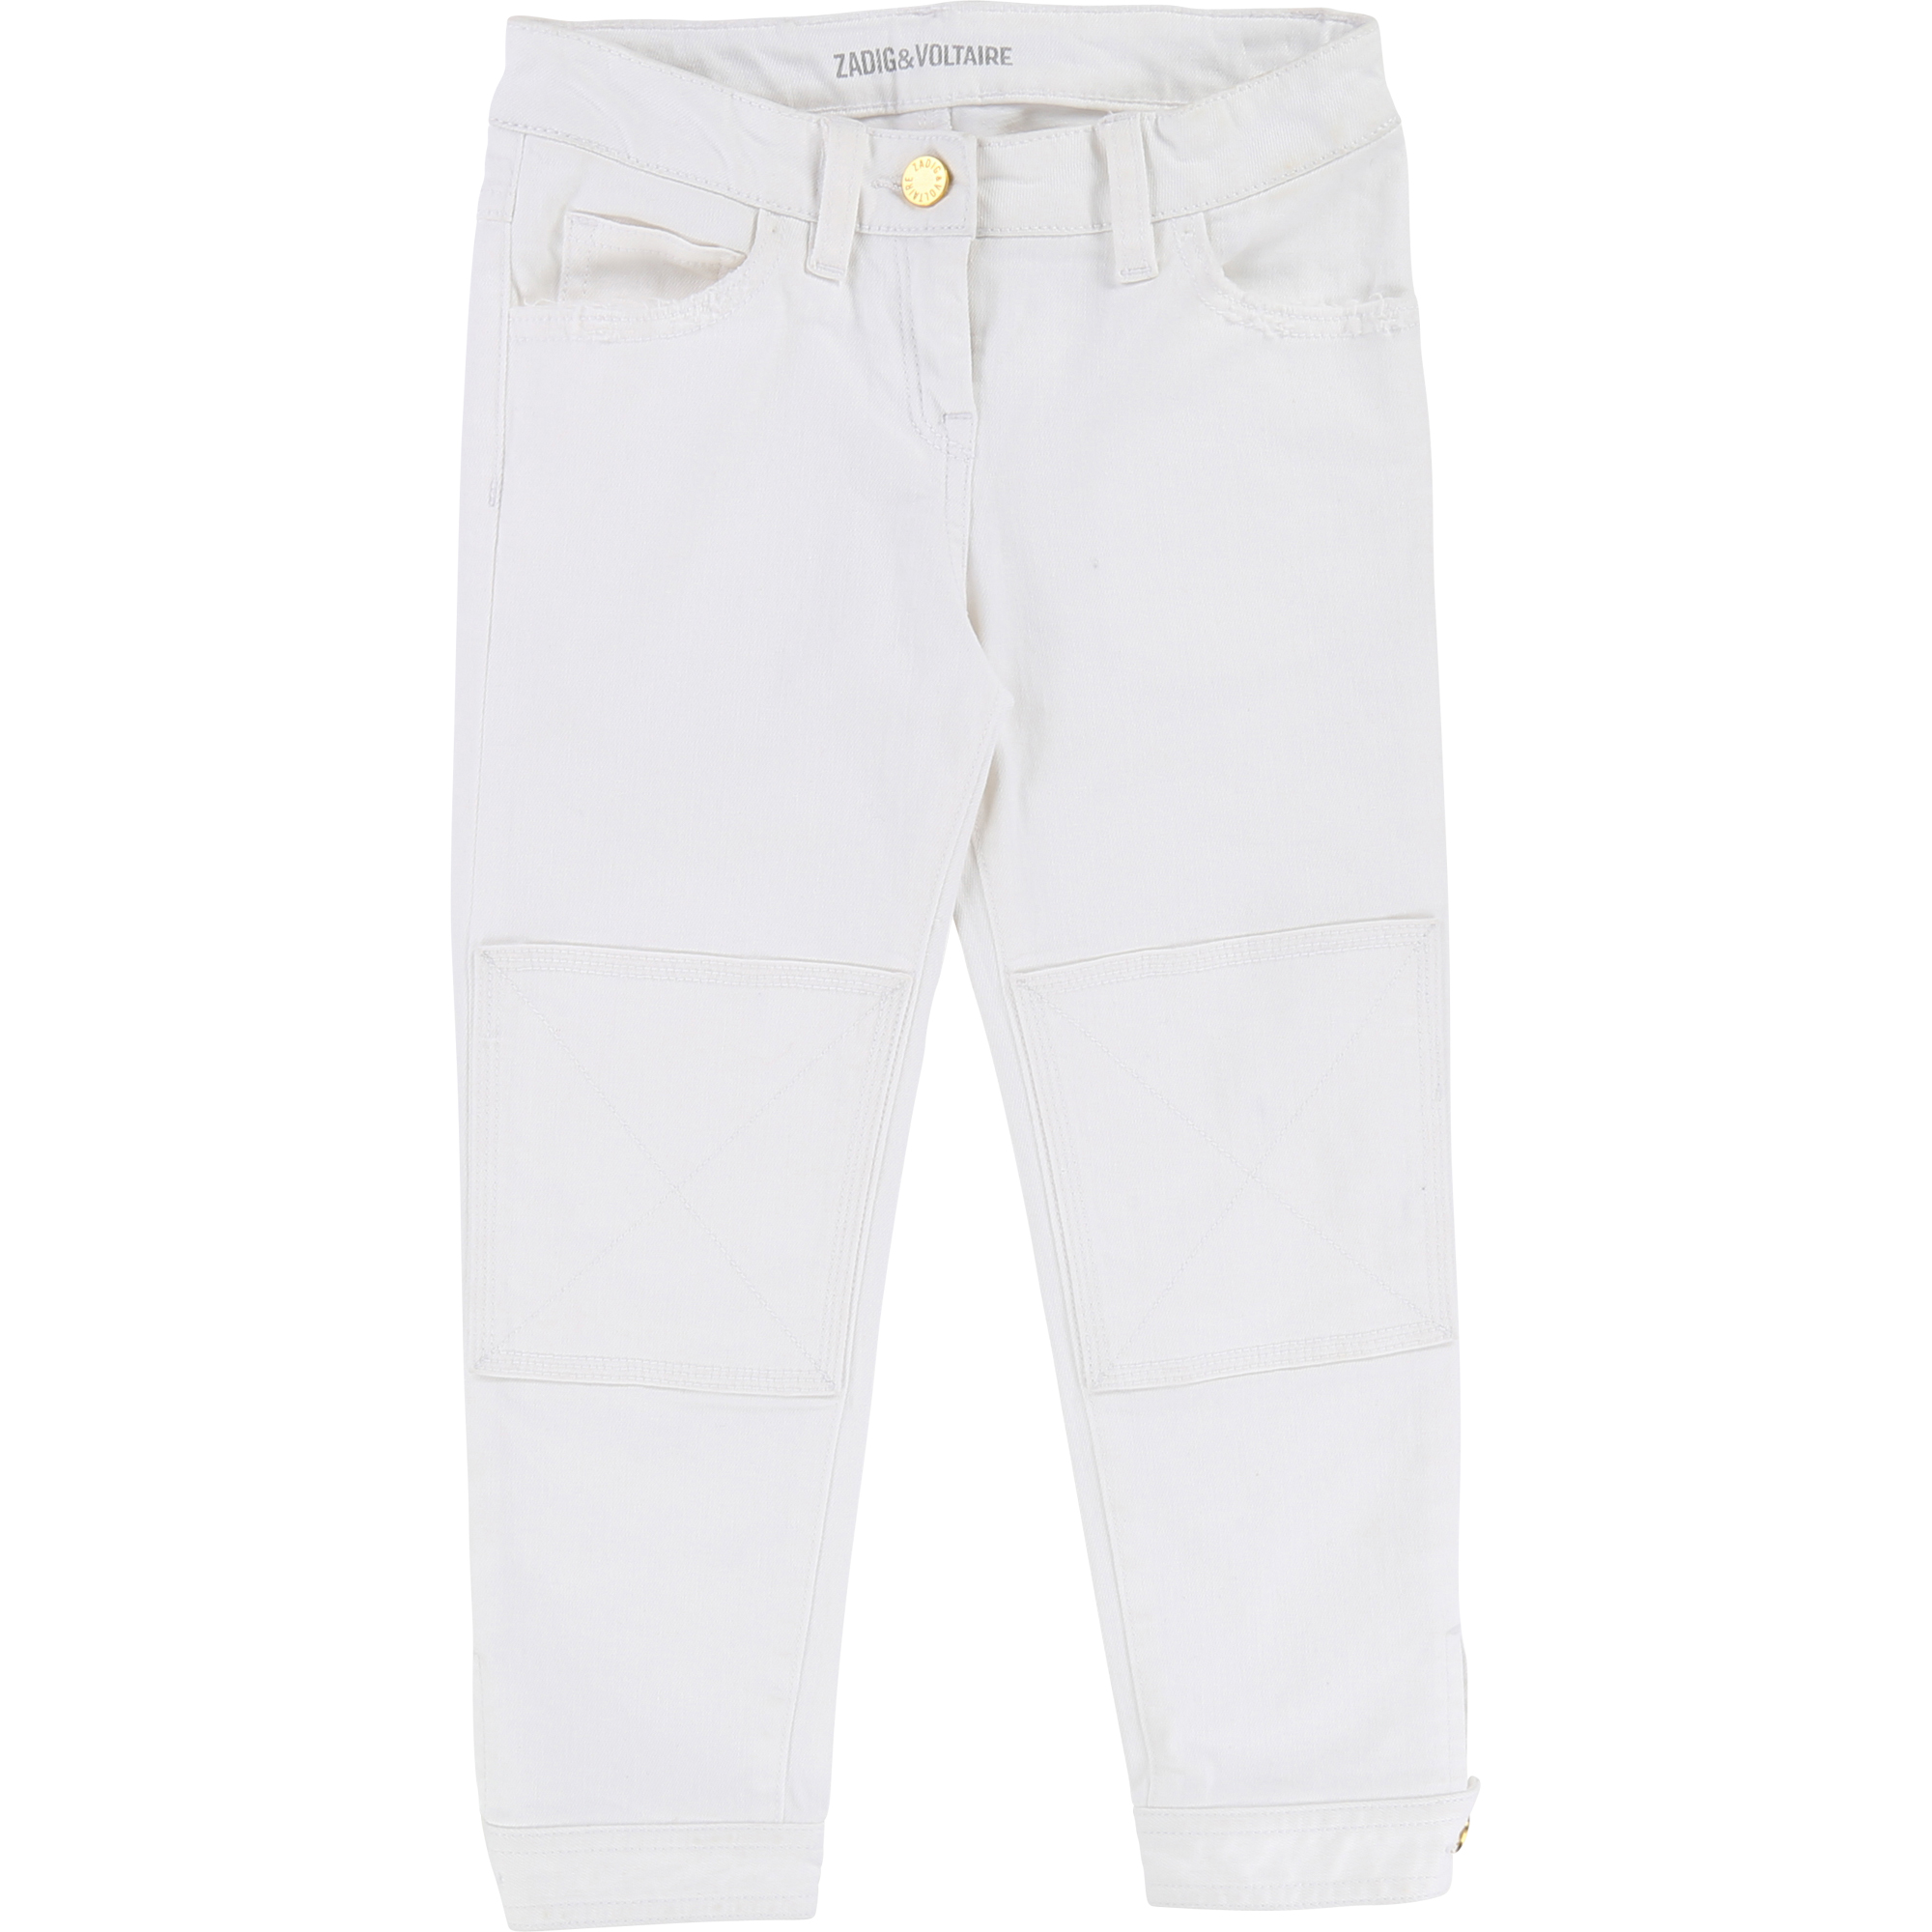 Zadig & Voltaire  - WHITE TROUSERS - Clothing